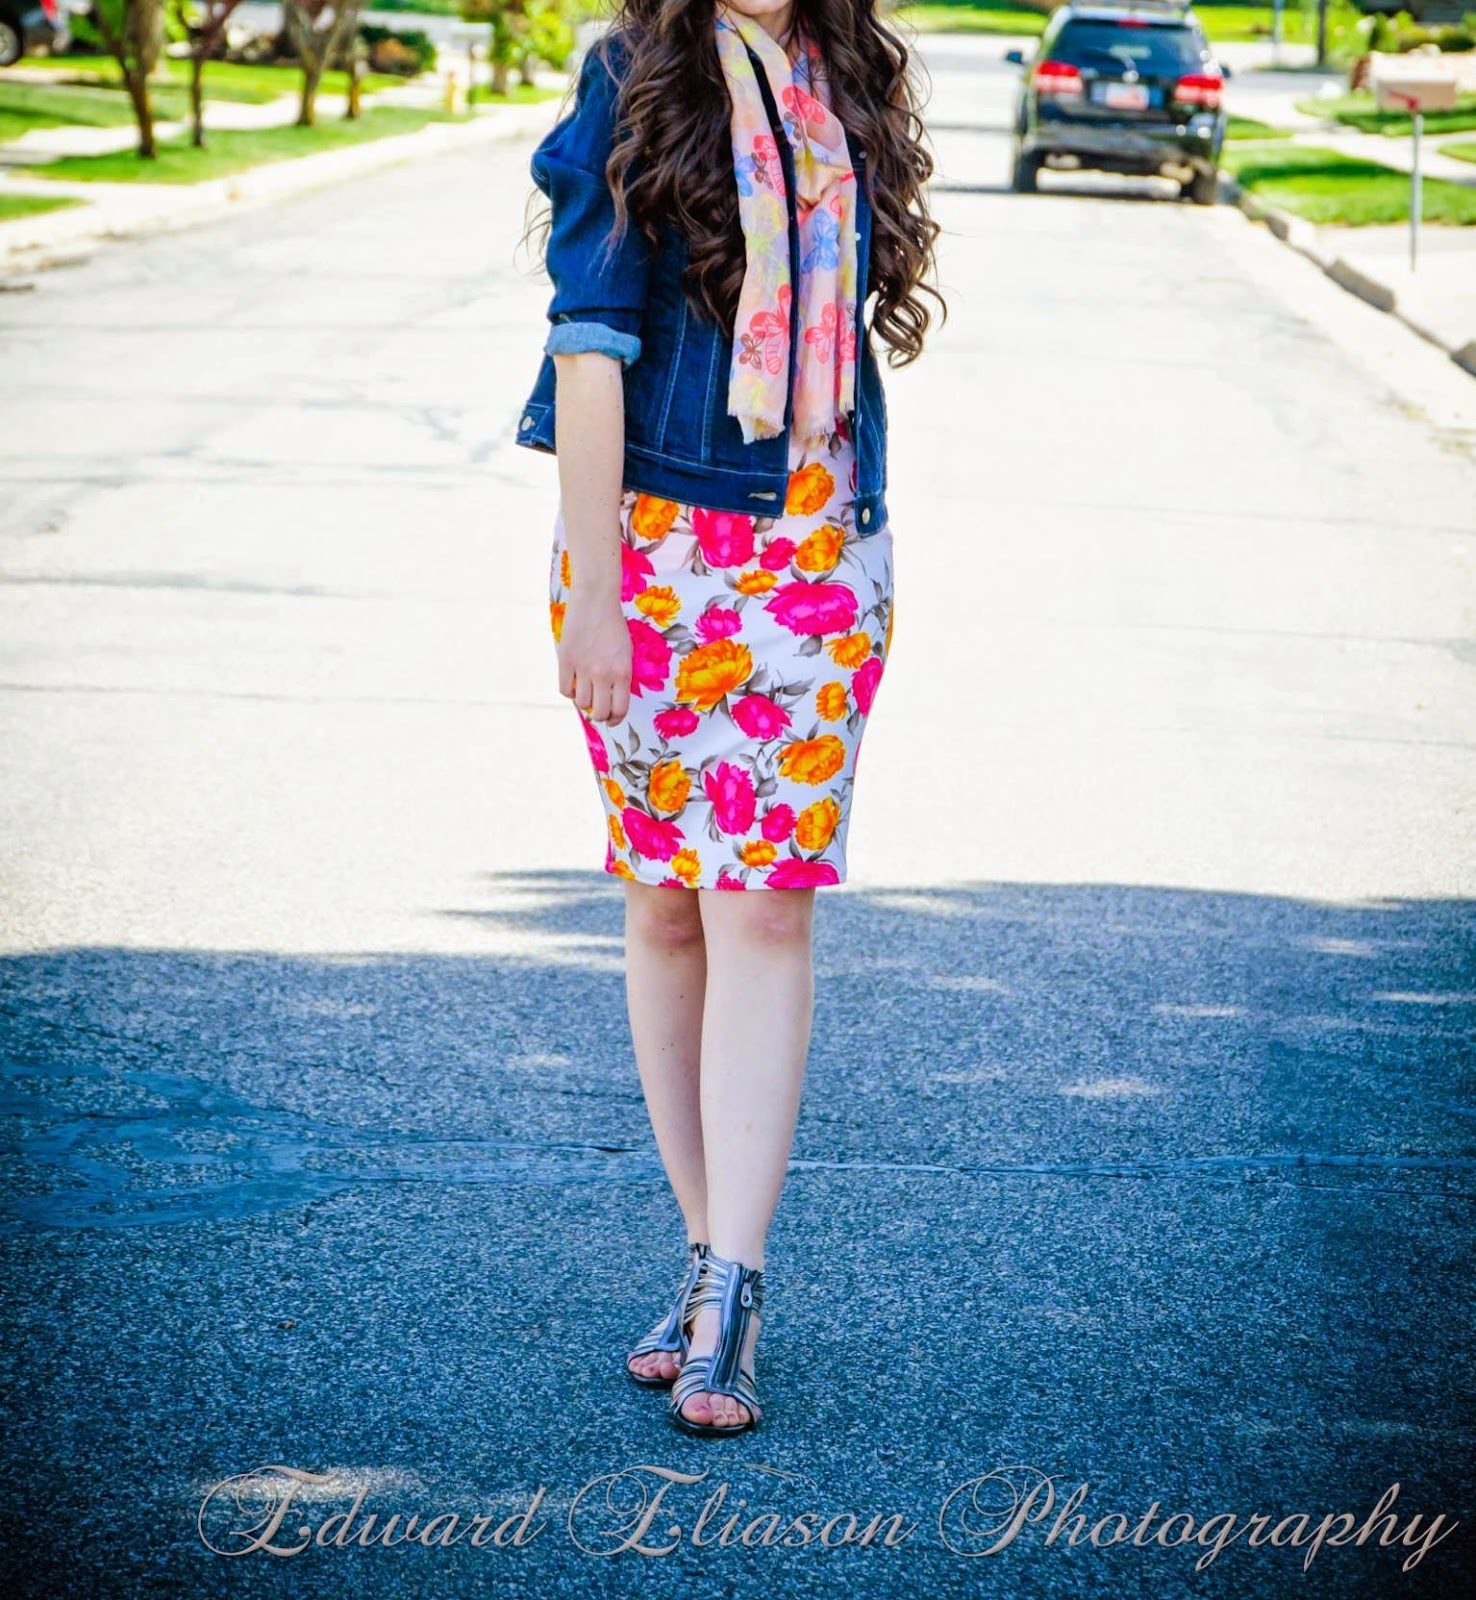 impressions boutique, floral skirt, pink and yellow florals, flower skirt, jean jacket, jcpenney's, jcp, butterfly scarf, gladiator sandals, silver gladiator sandals, casual outfit,